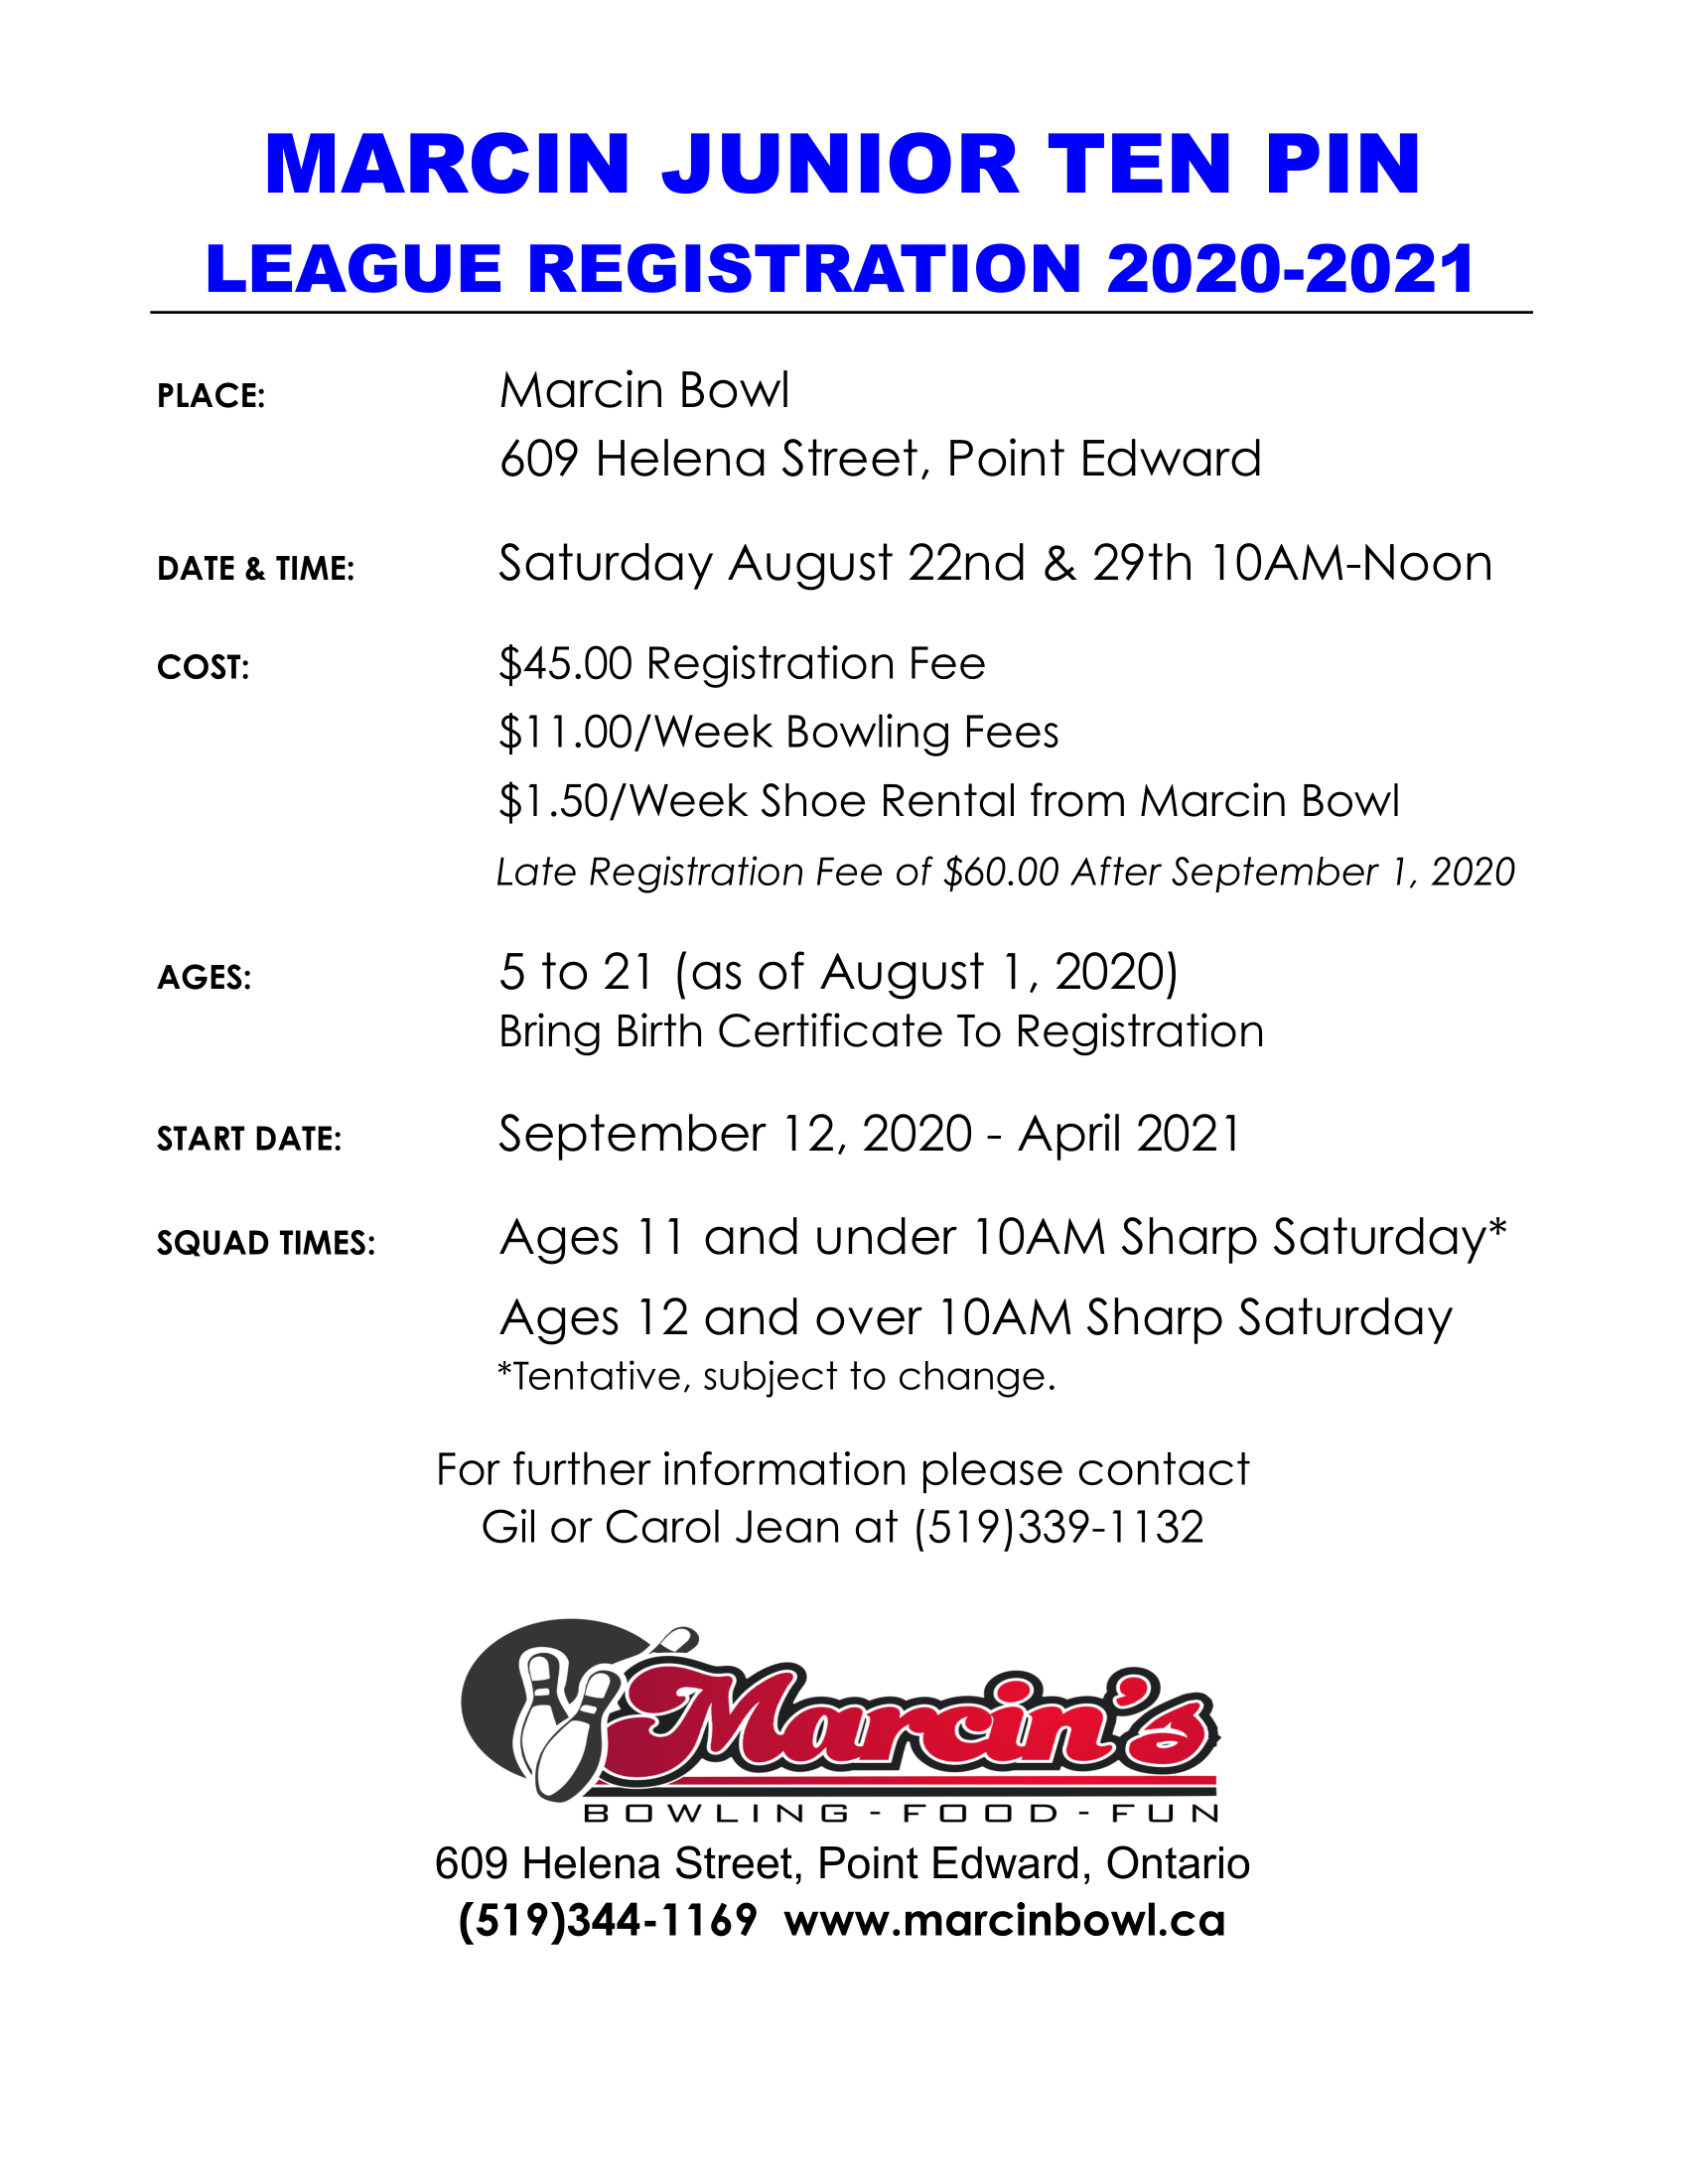 Marcin Junior Ten Pin league registration. Readable version linked above.